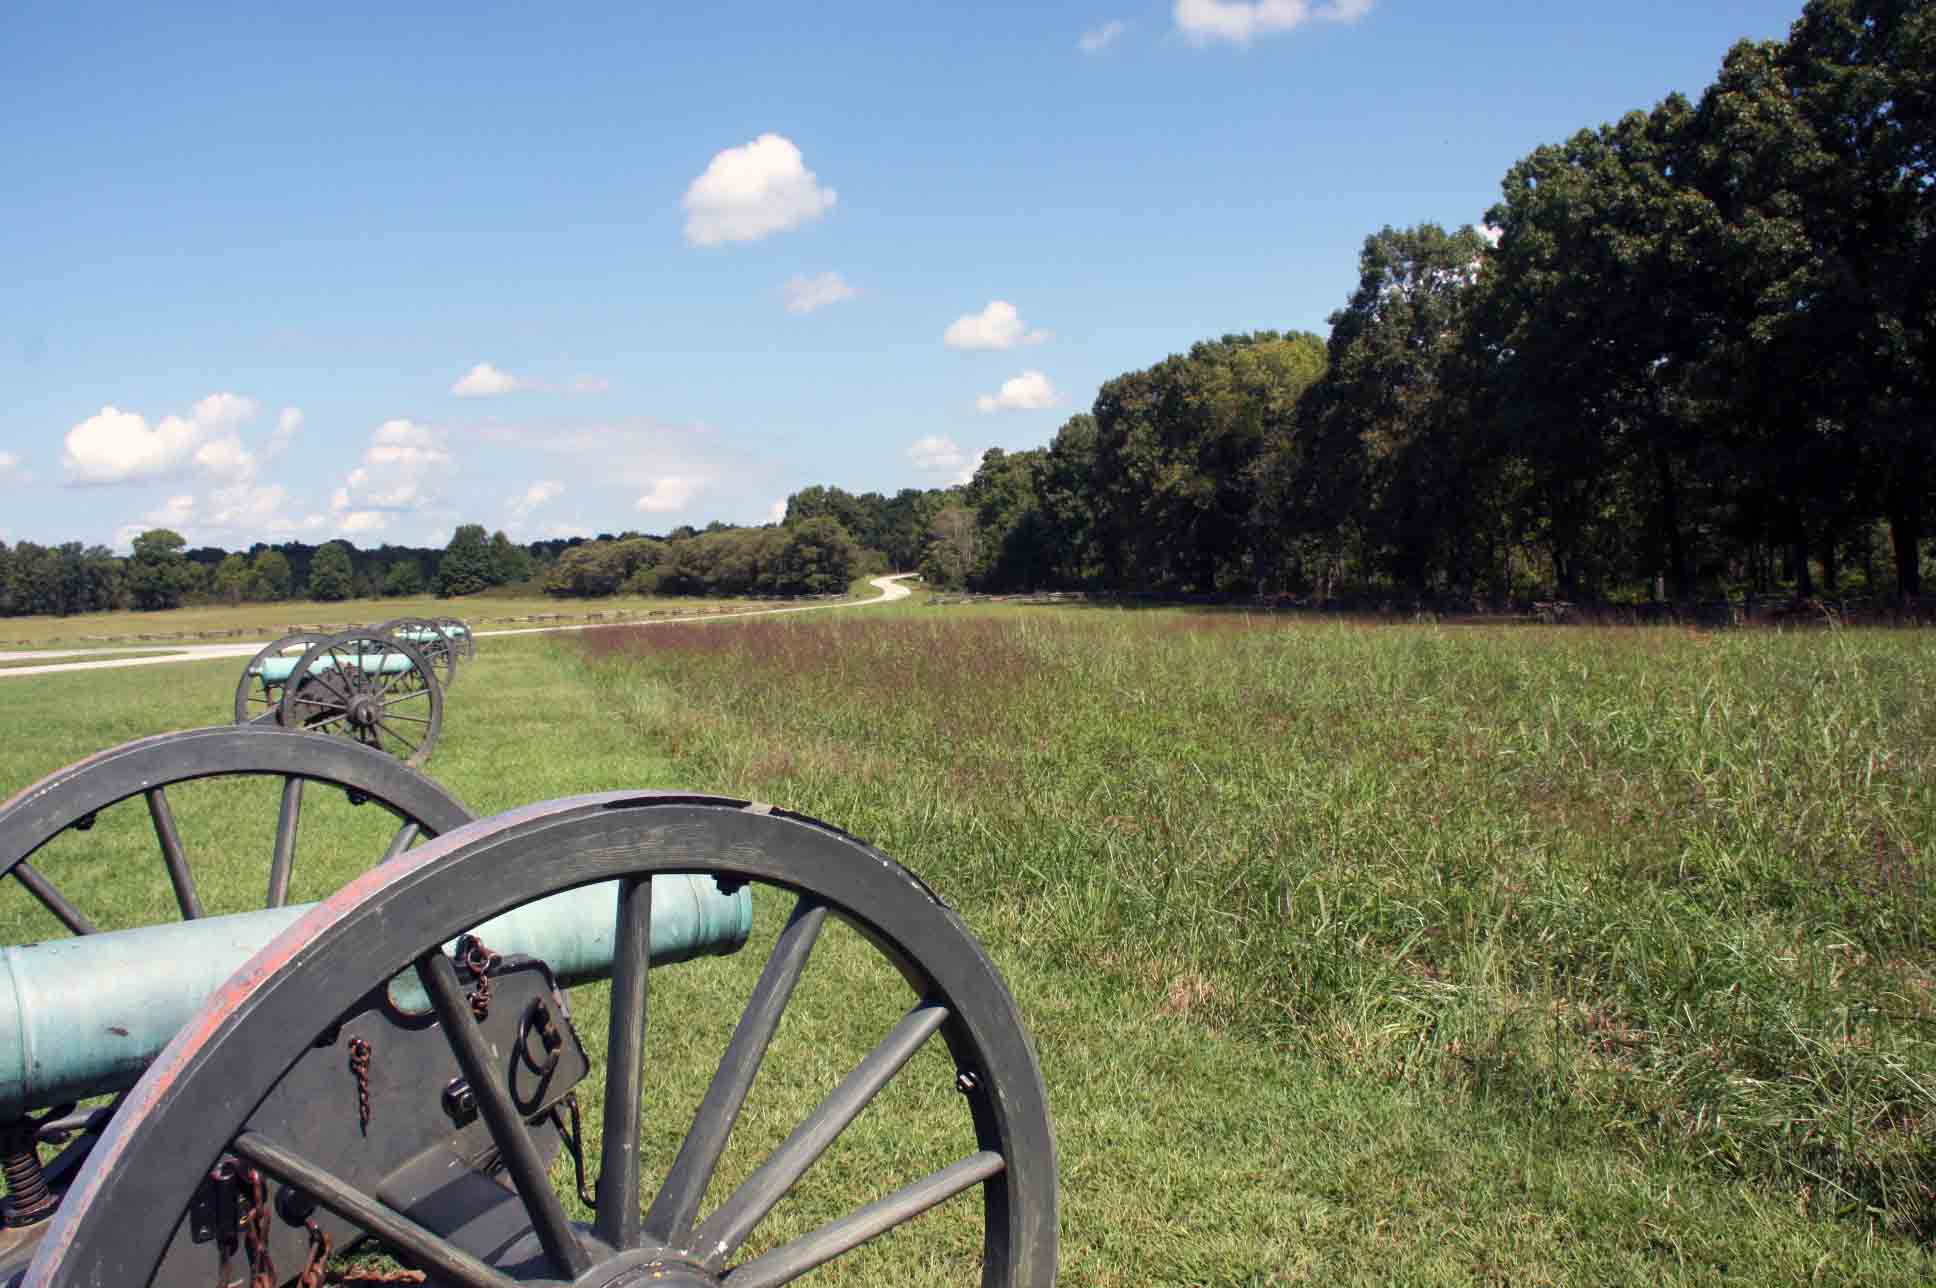 Line of cannons located at tour stop 4, click photo to enlarge.